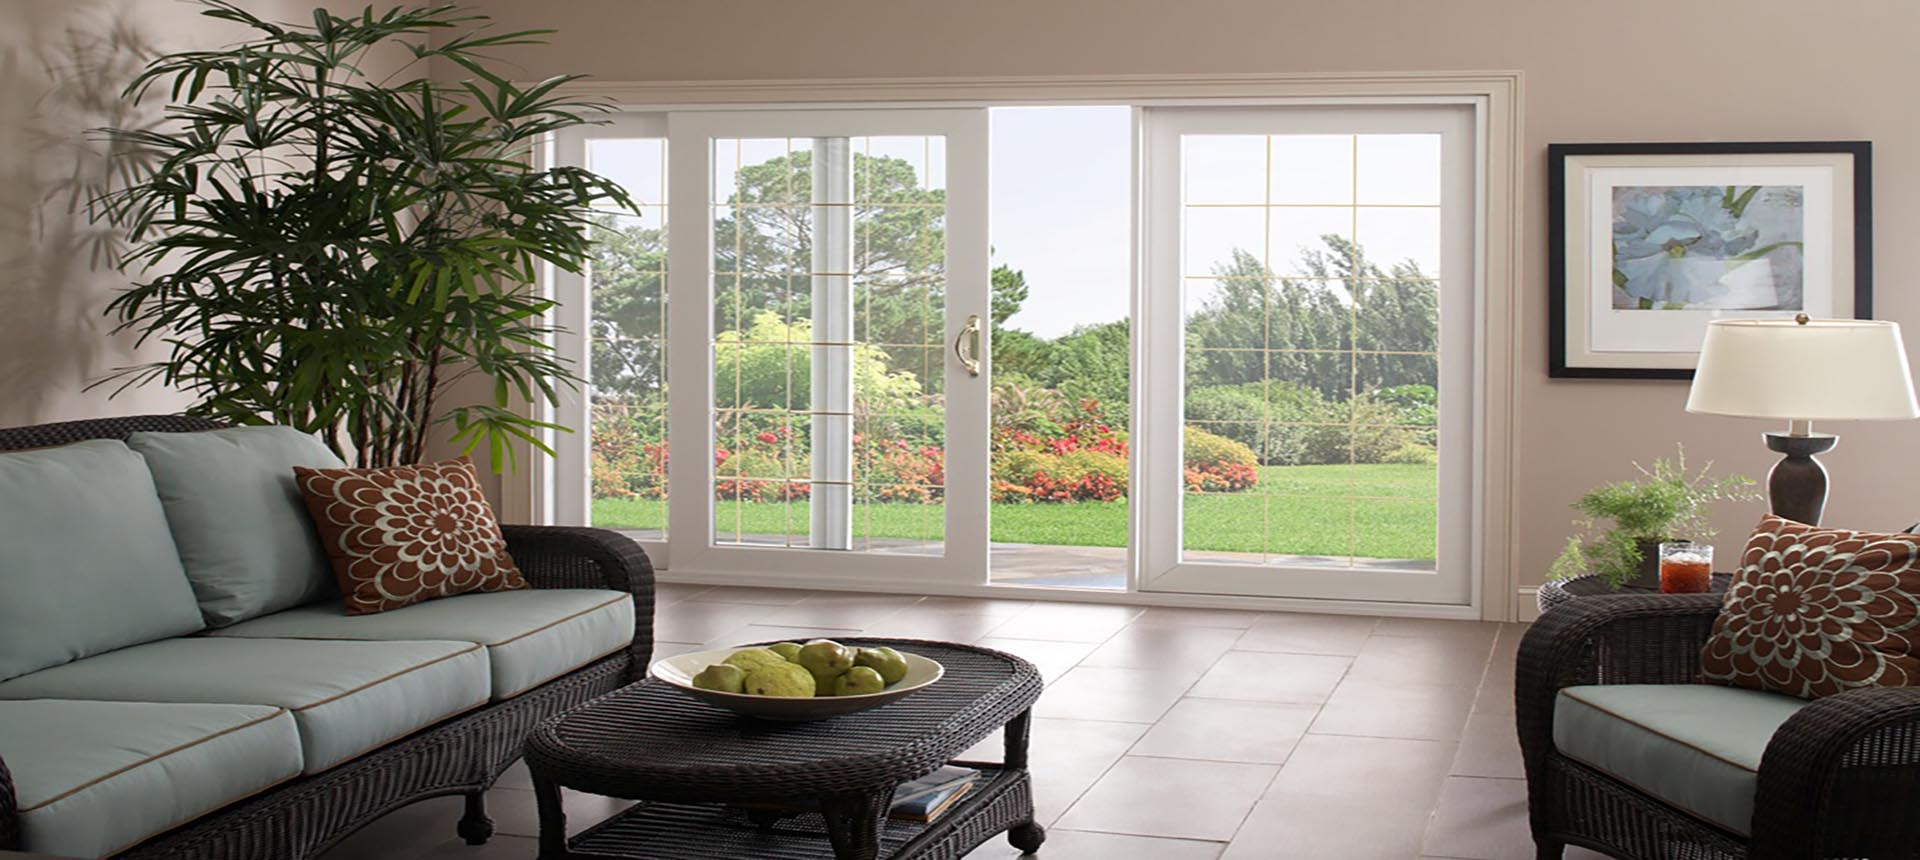 Sliding Glass Patio Door Repairs In California